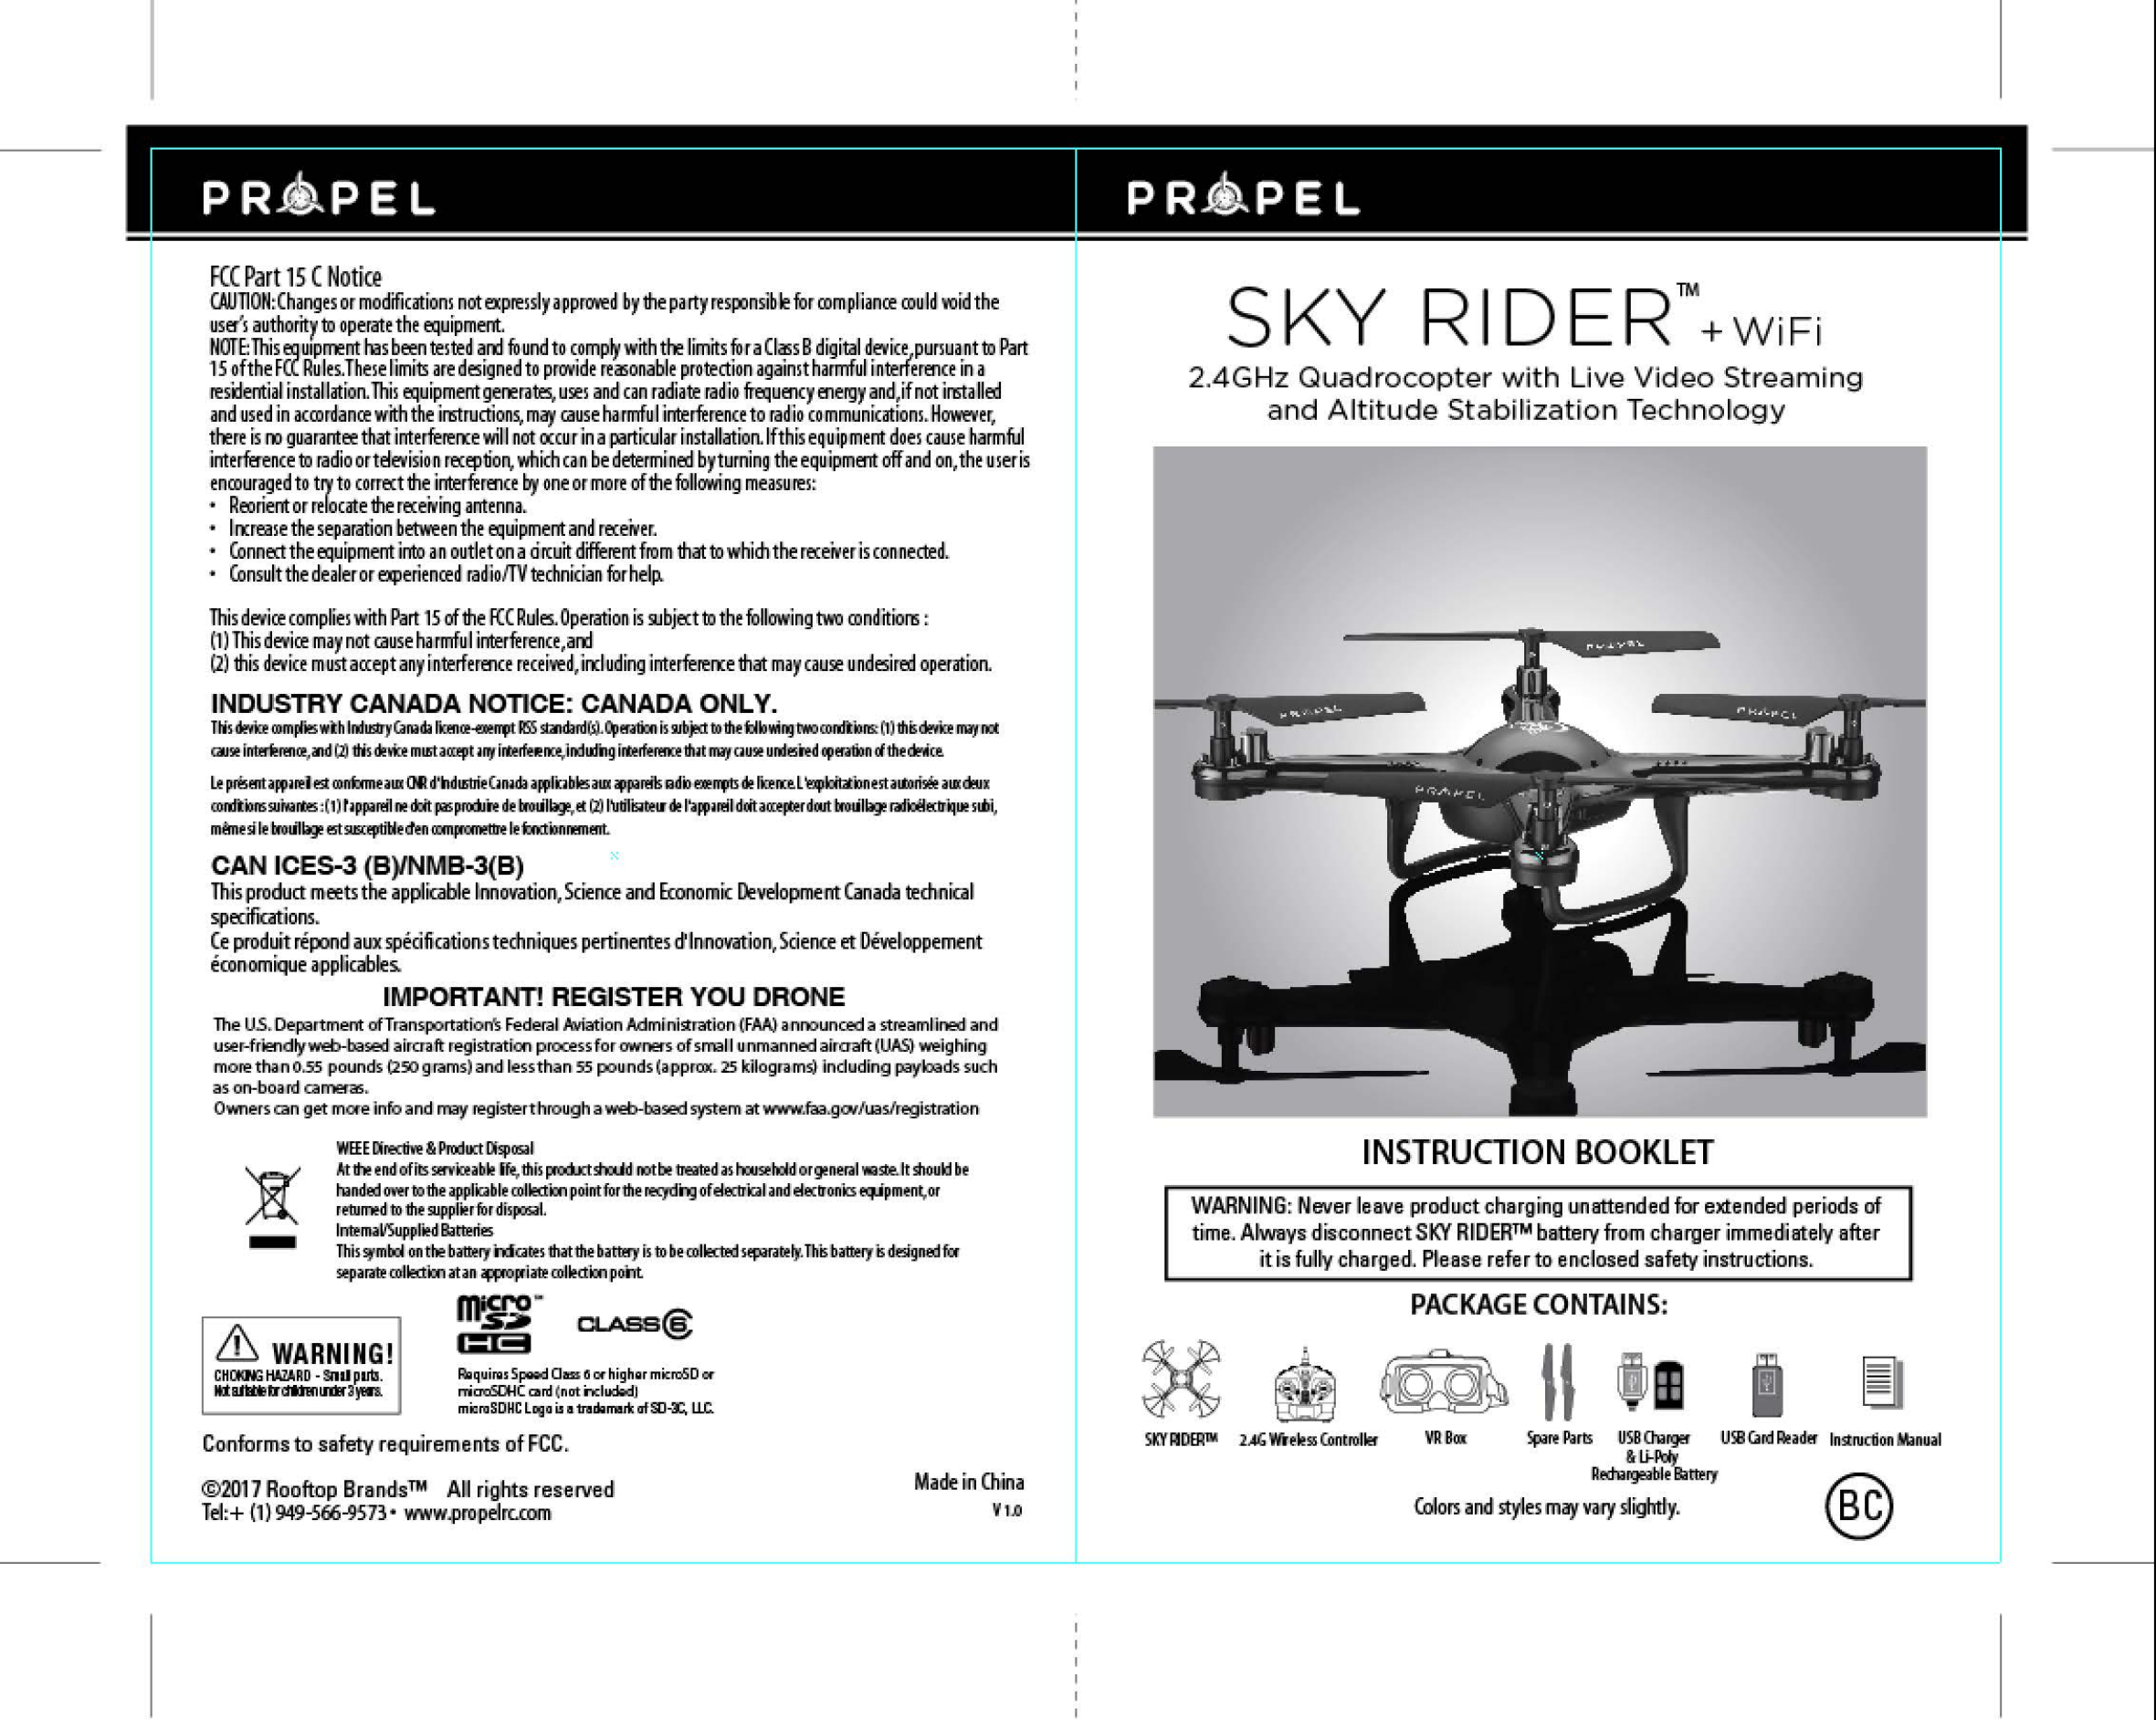 sky hd instruction manual download